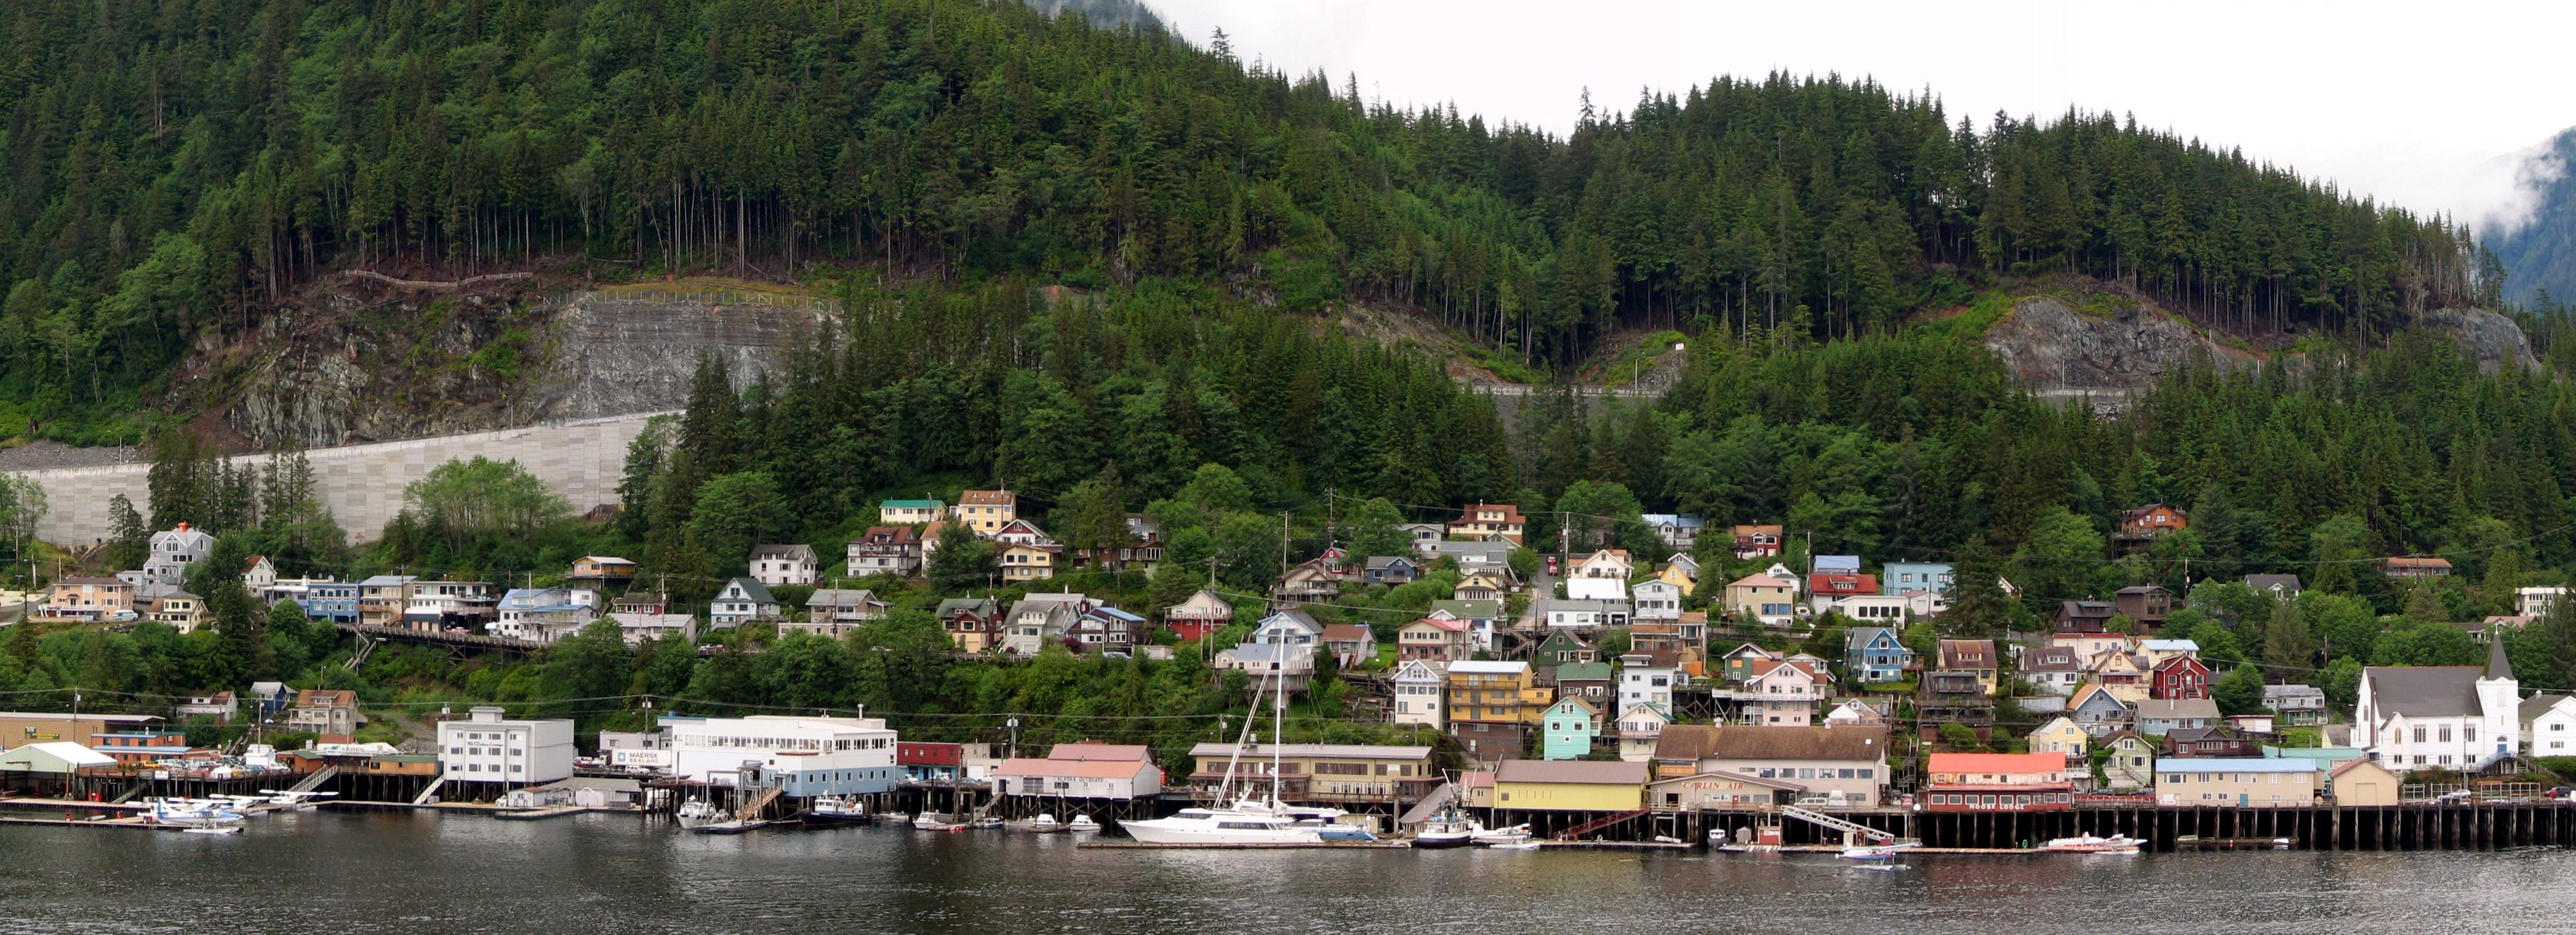 images of ketchikan alaska 36 amazing photos of ketchikan in alaska places boomsbeat 2880